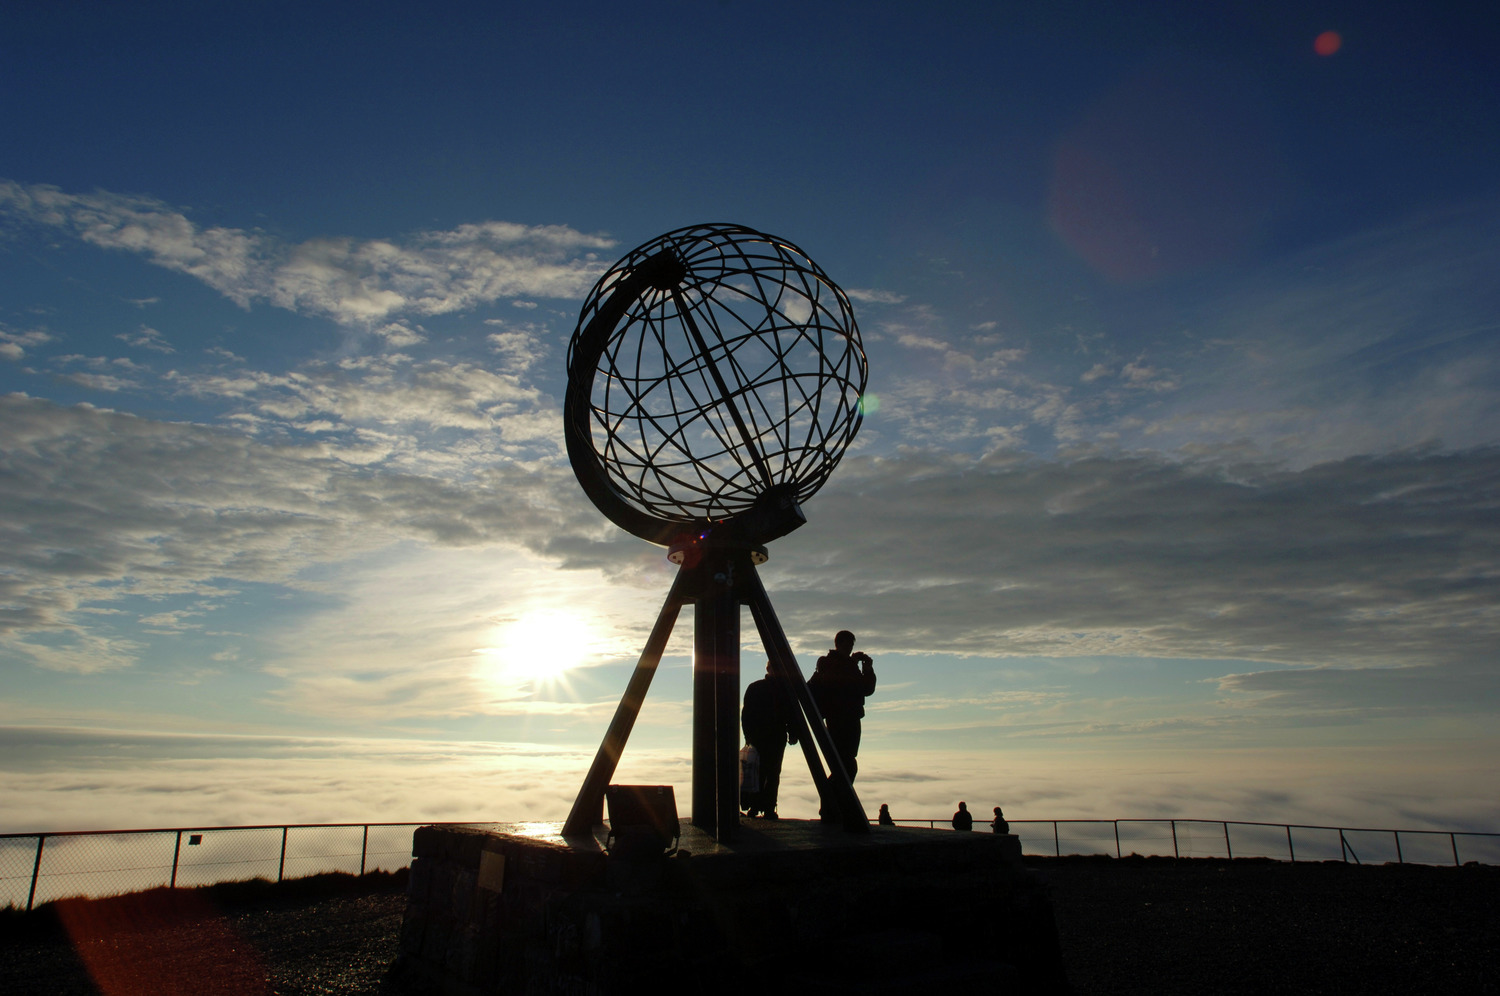 North cape by Johan Wildhagen - Visitnorway.com